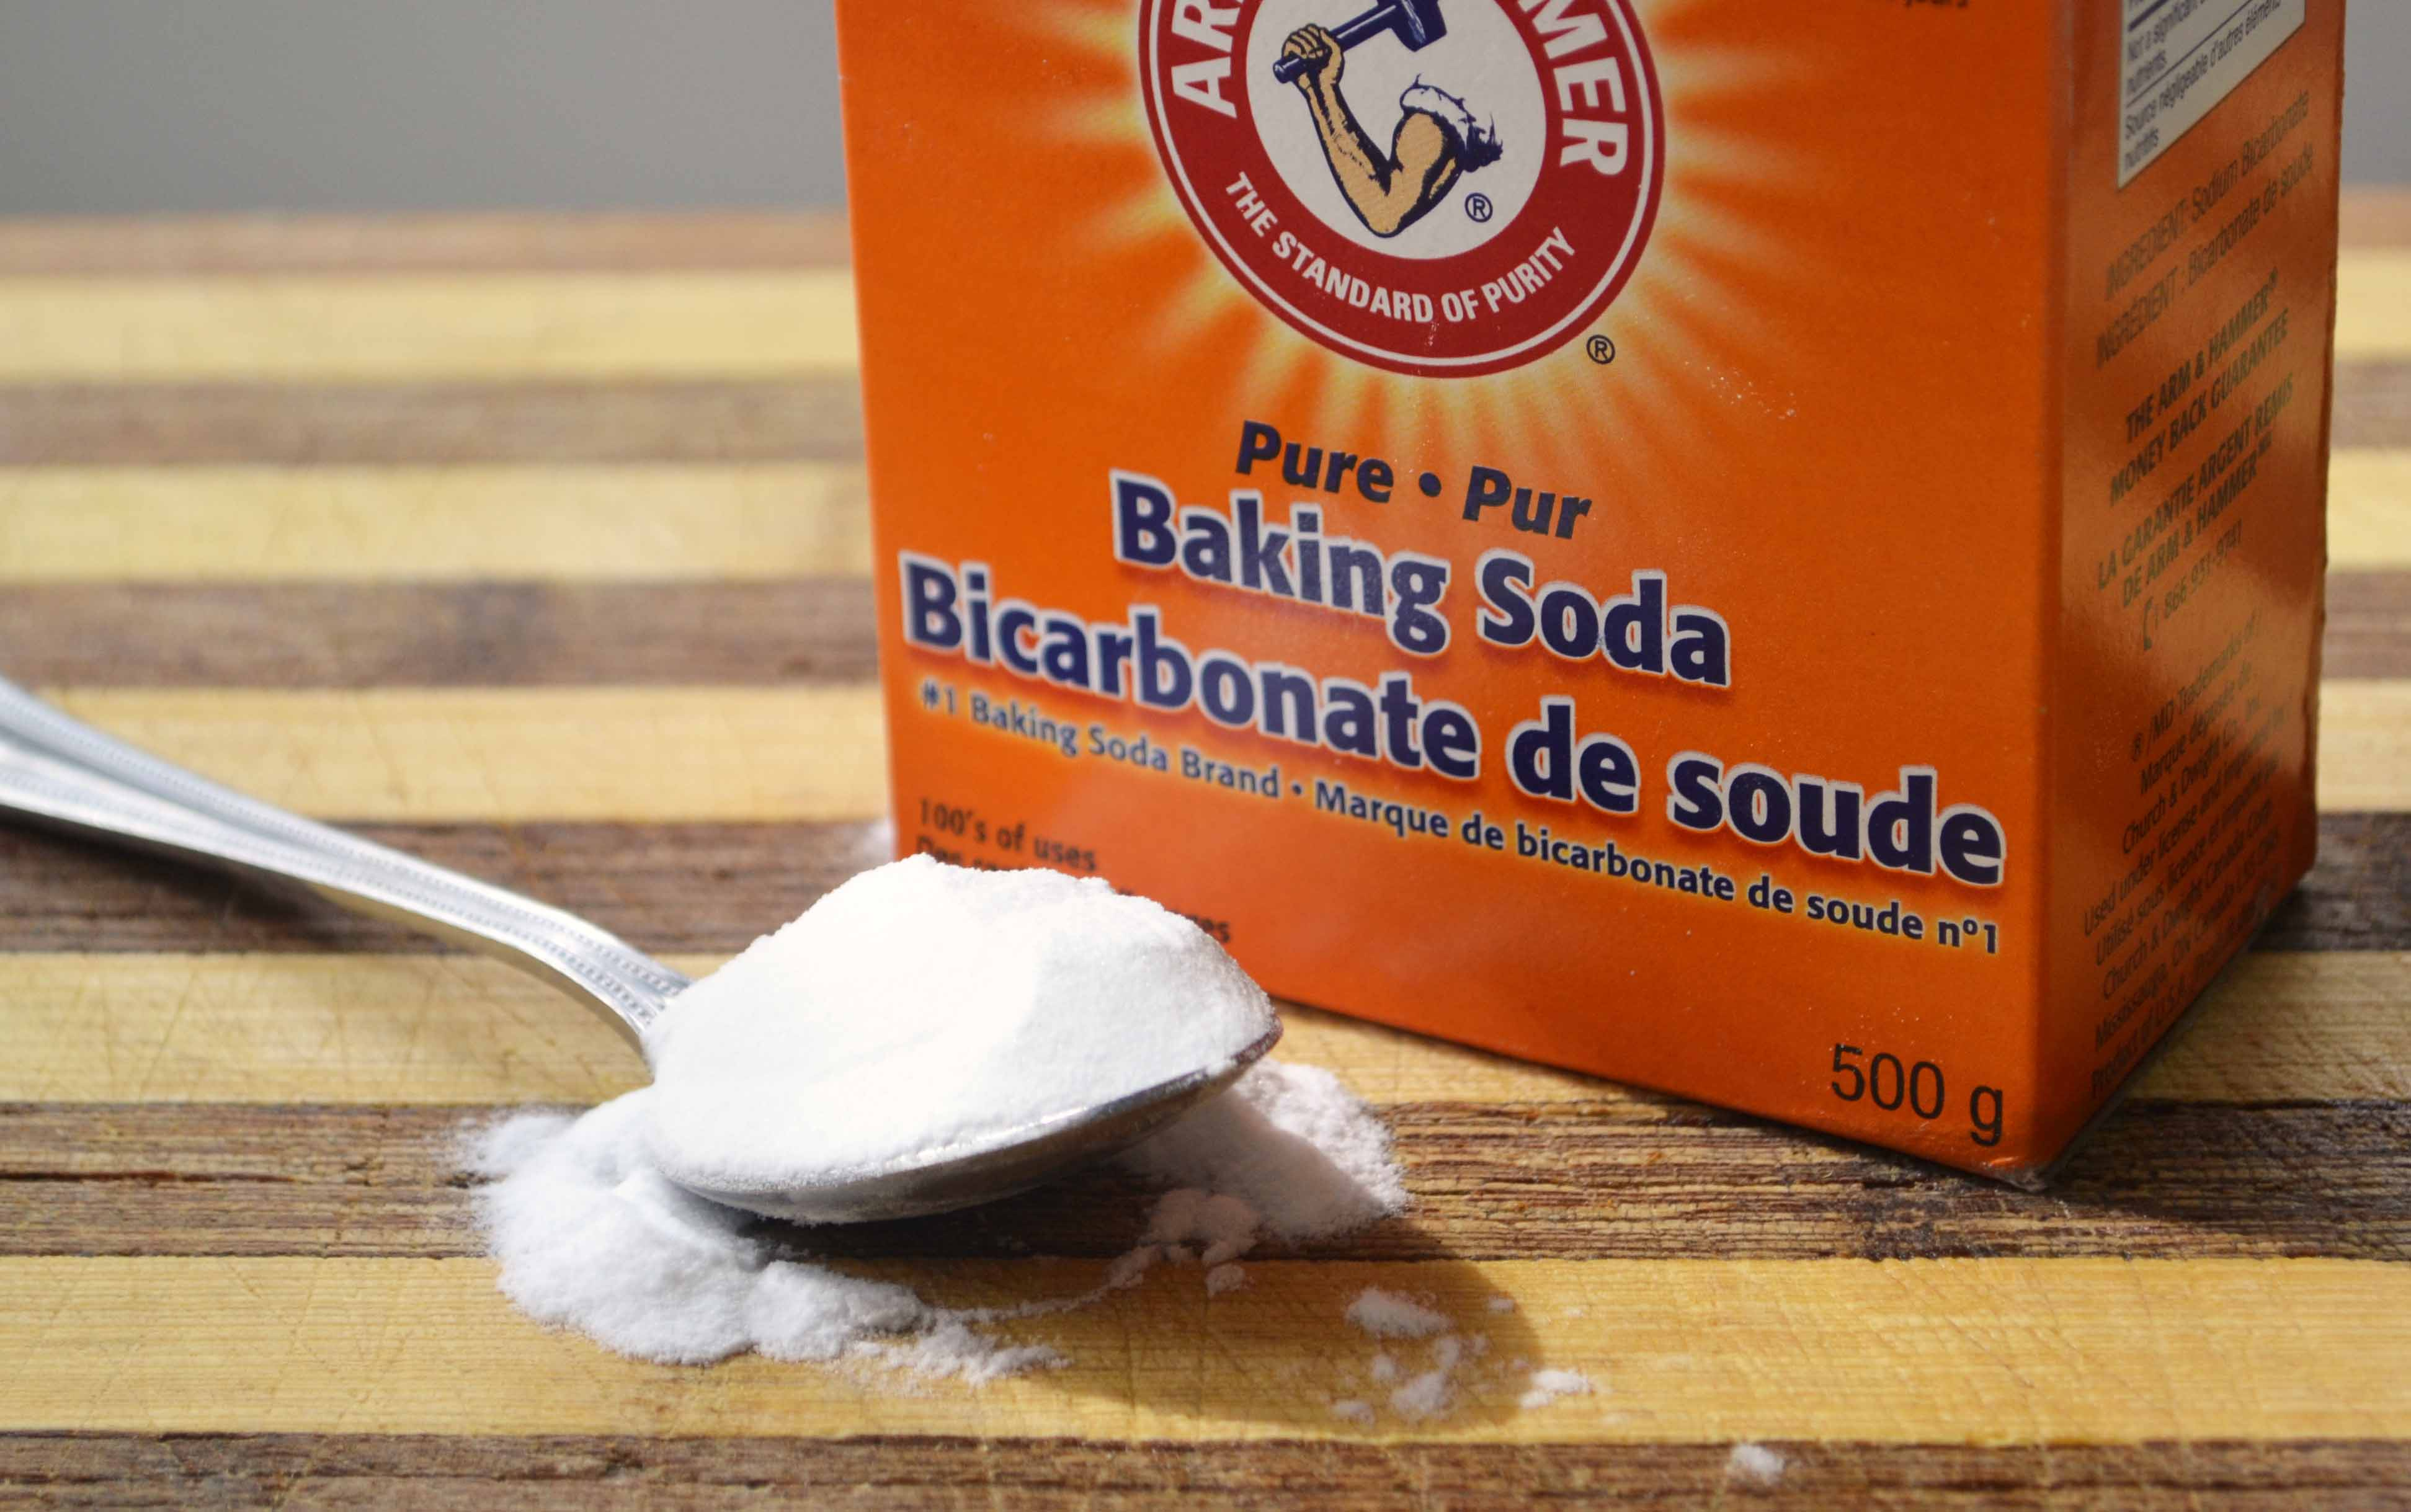 diet-moi-tan-goc-bang-go-va-baking-soda-1.jpg